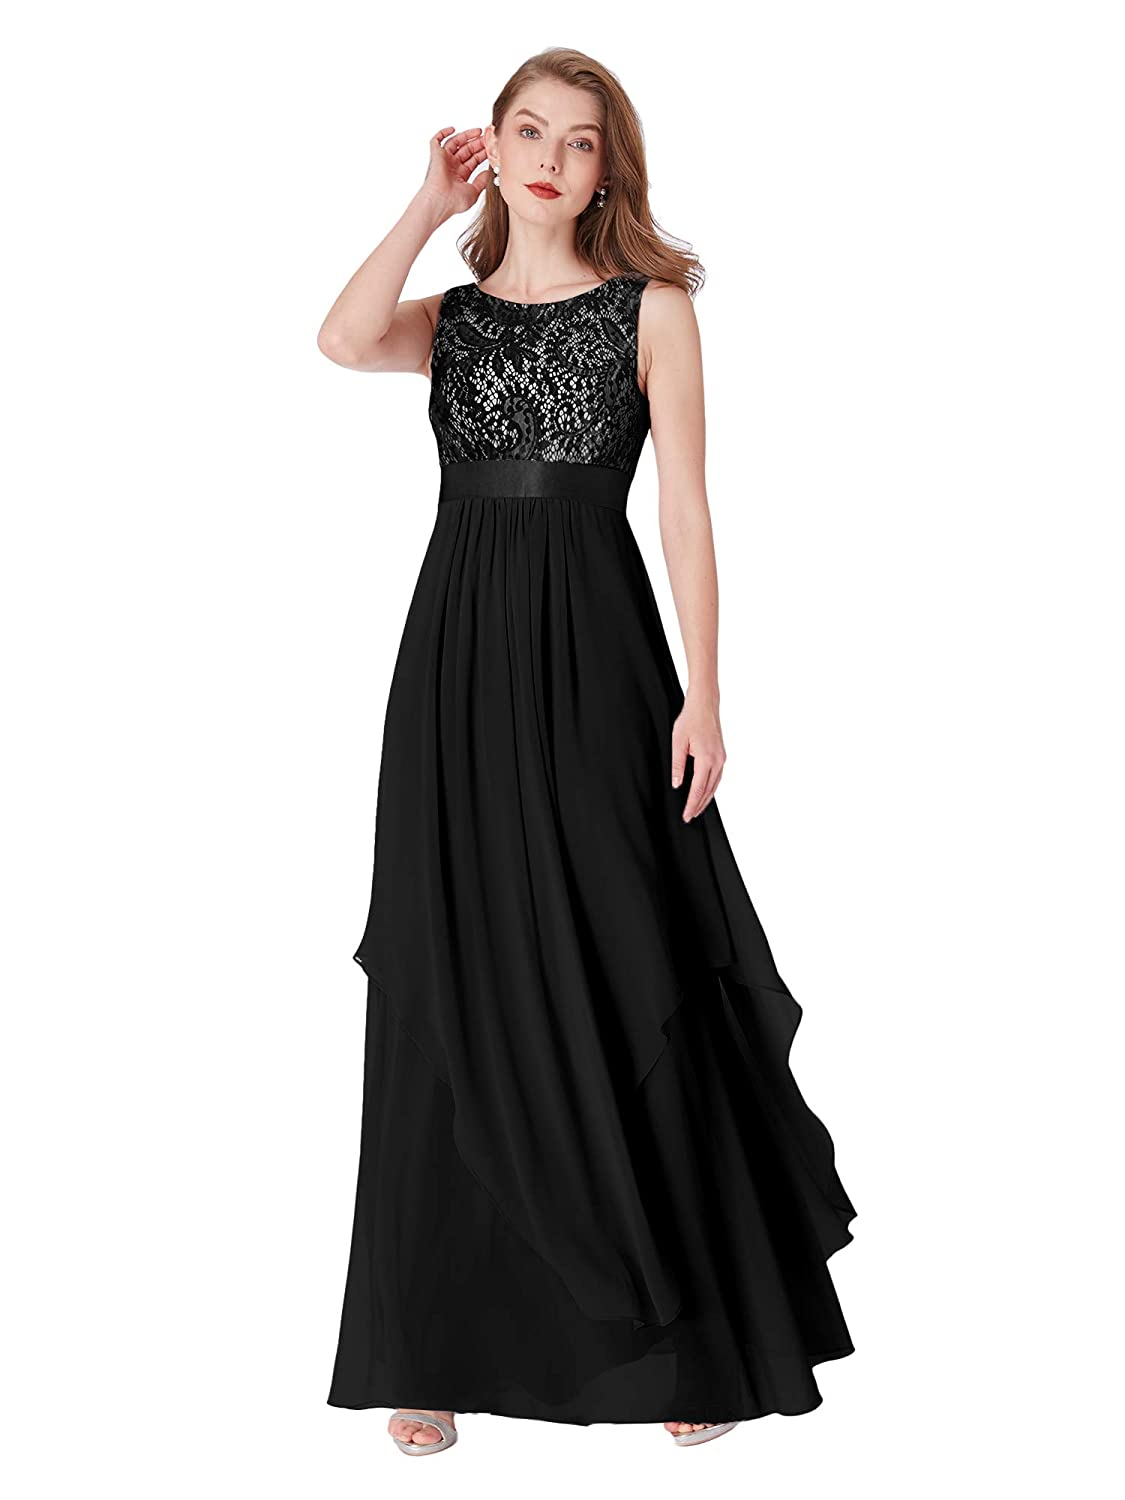 a02de34c48 Ever-Pretty Elegant Sleeveless Round Neck Party Evening Dress 08217 at  Amazon Women s Clothing store